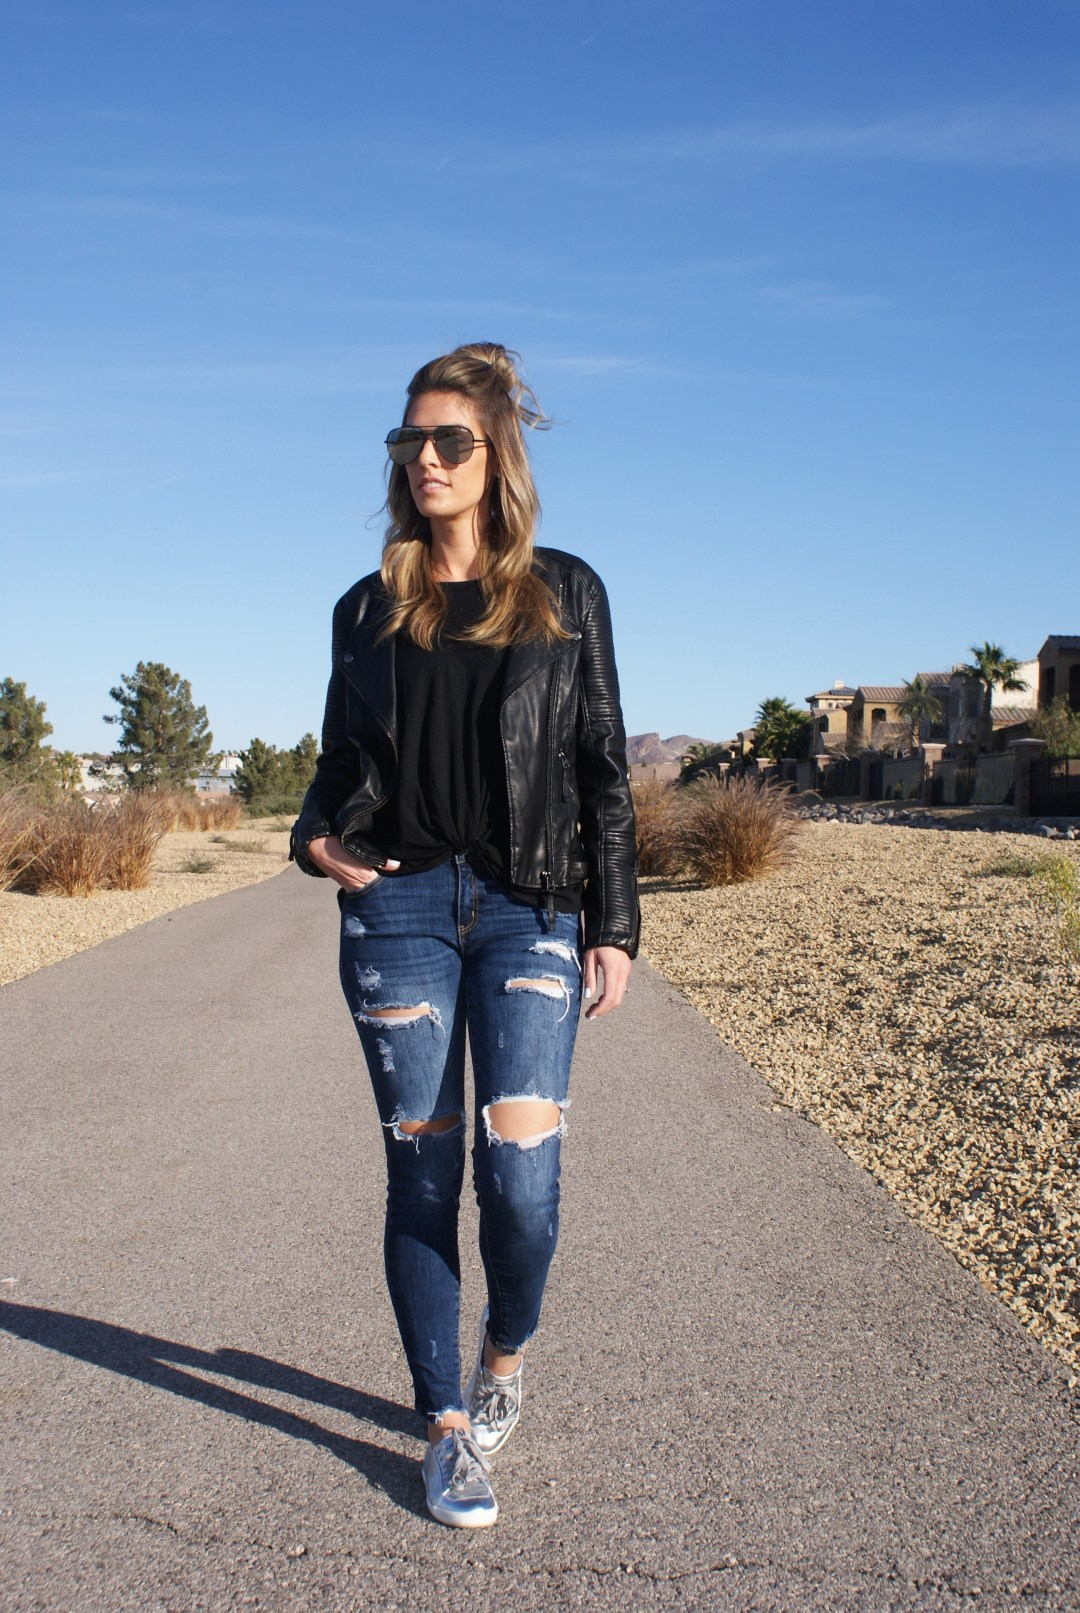 A Casual Weekend Look & Learning How To Embrace Change